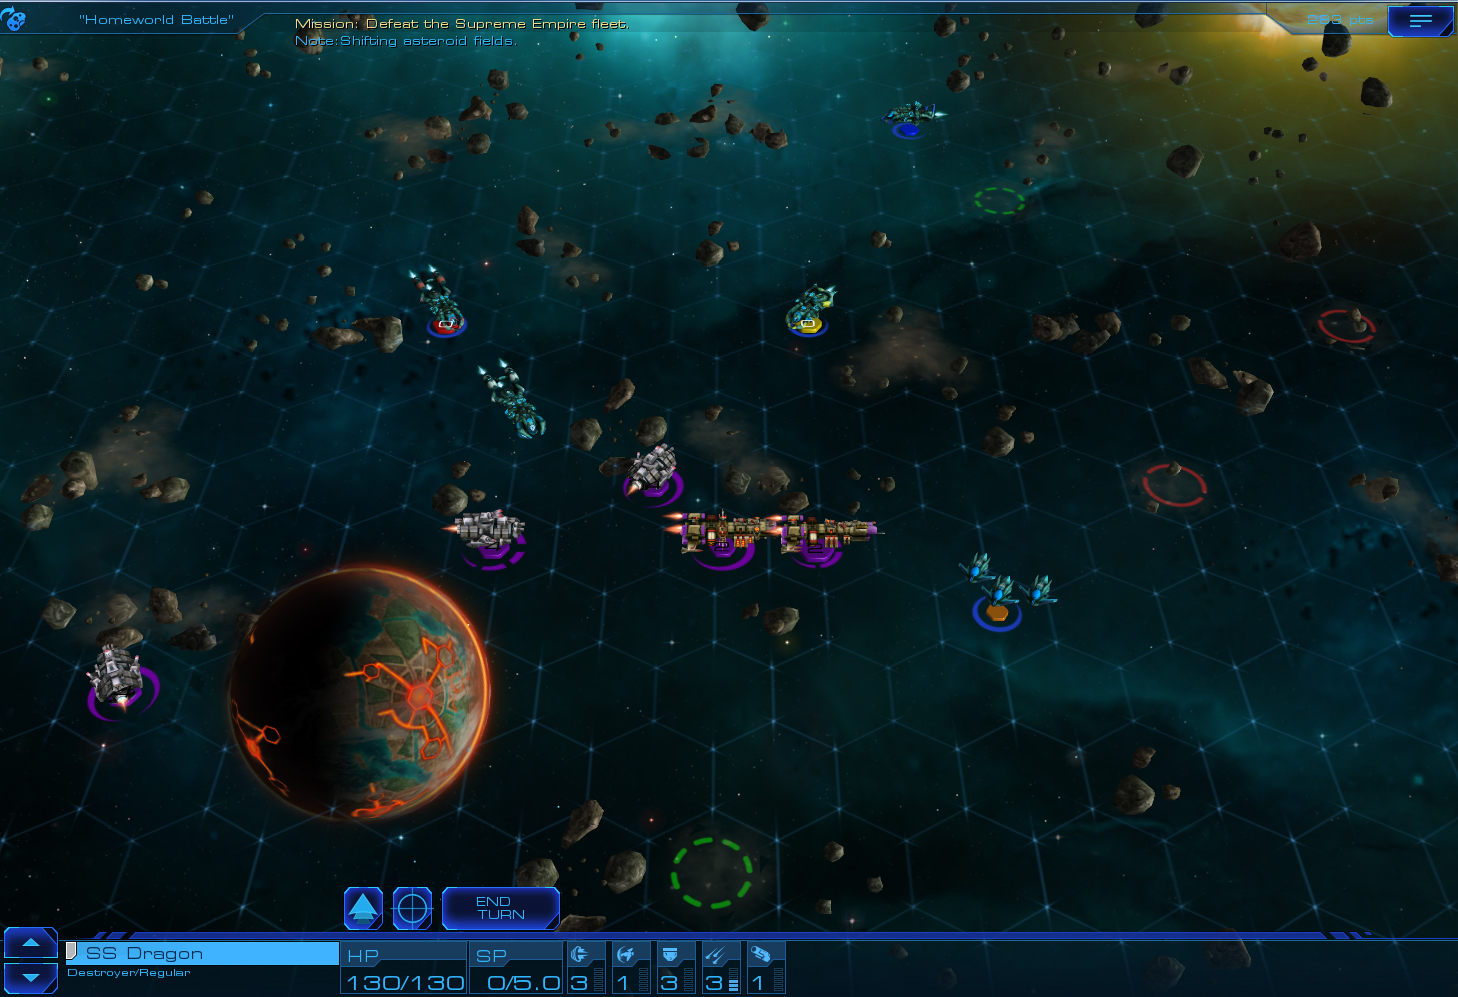 Sid Meier's Starships, a new interstellar strategy game, heads to Mac & iPad early this year